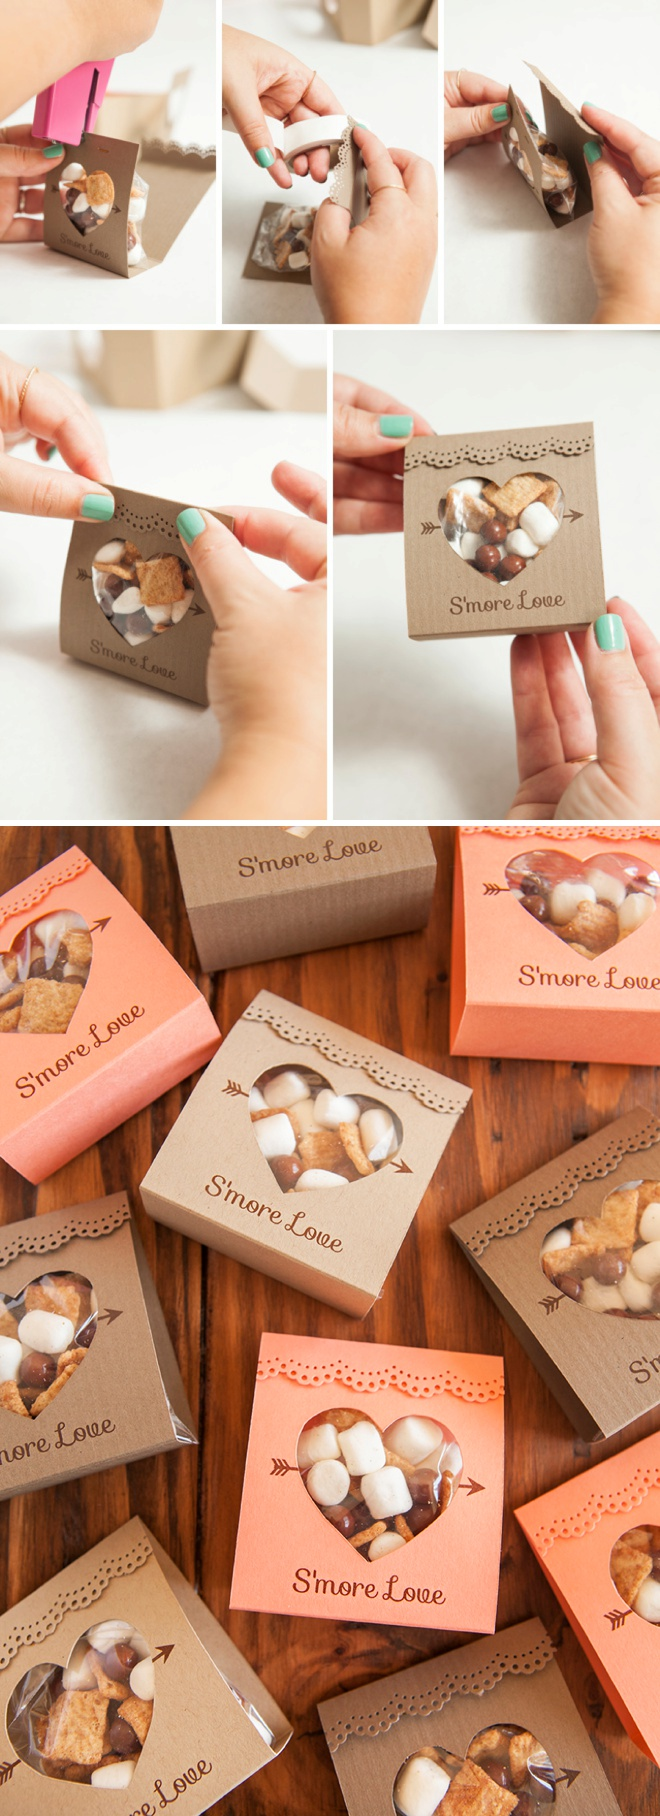 How to make these adorable smore love wedding favors adorable idea for smores wedding favors so unique free design too junglespirit Choice Image